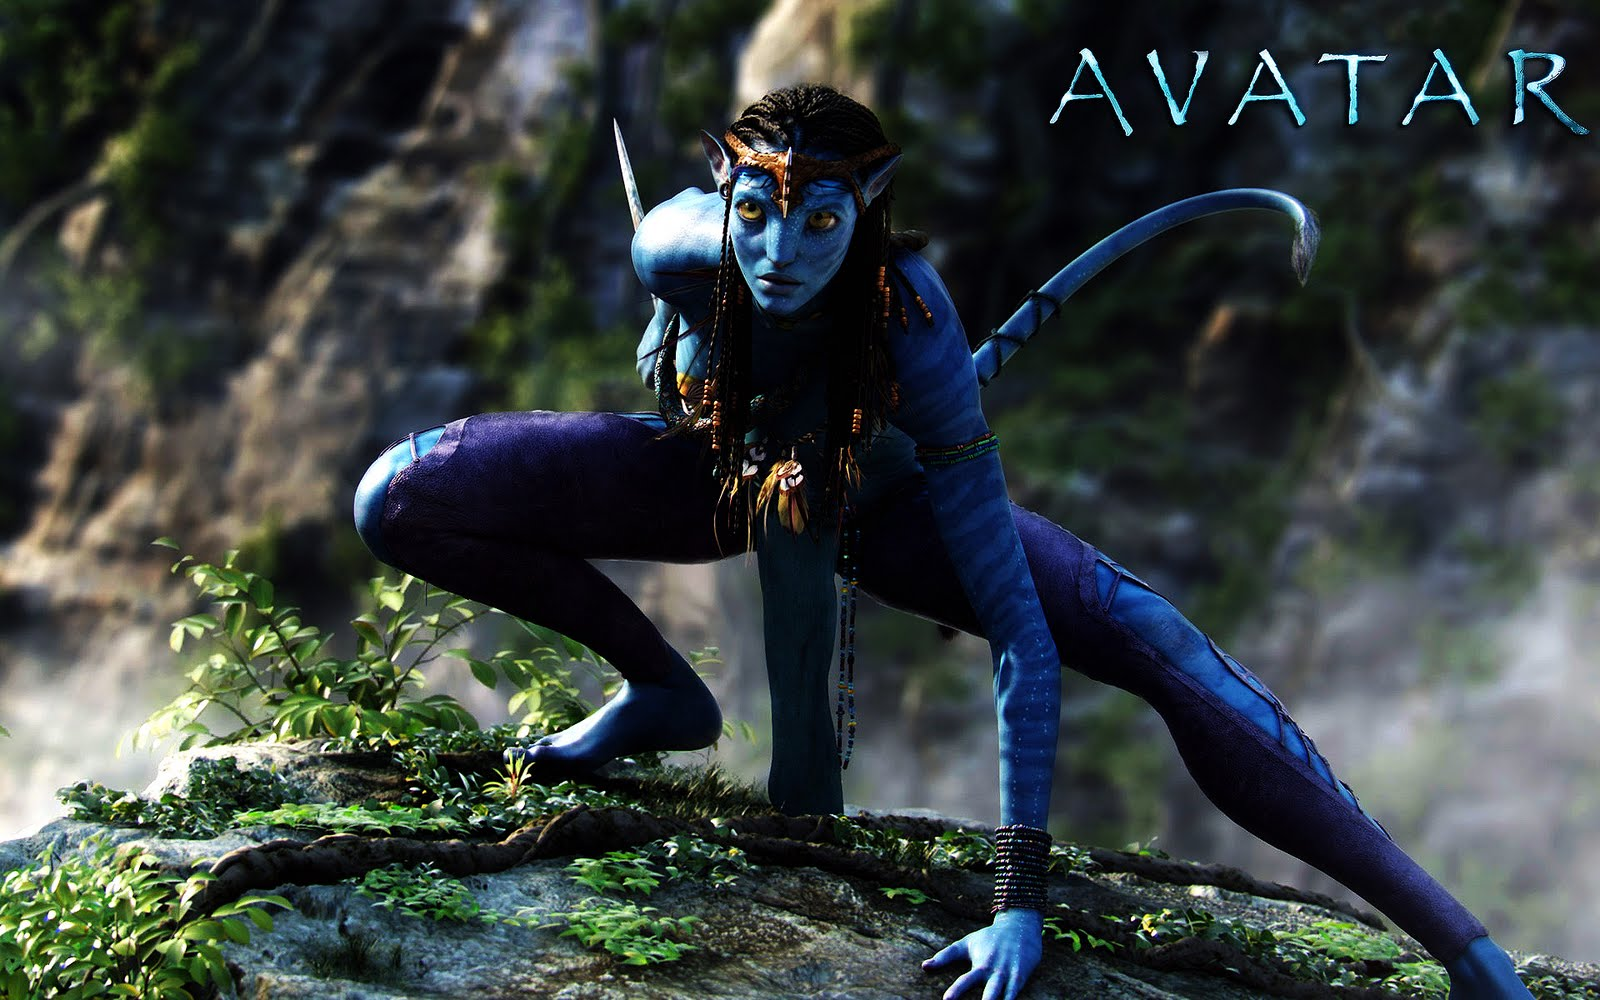 300 Full Movie >> Movie Backgrounds: Avatar Wallpapers